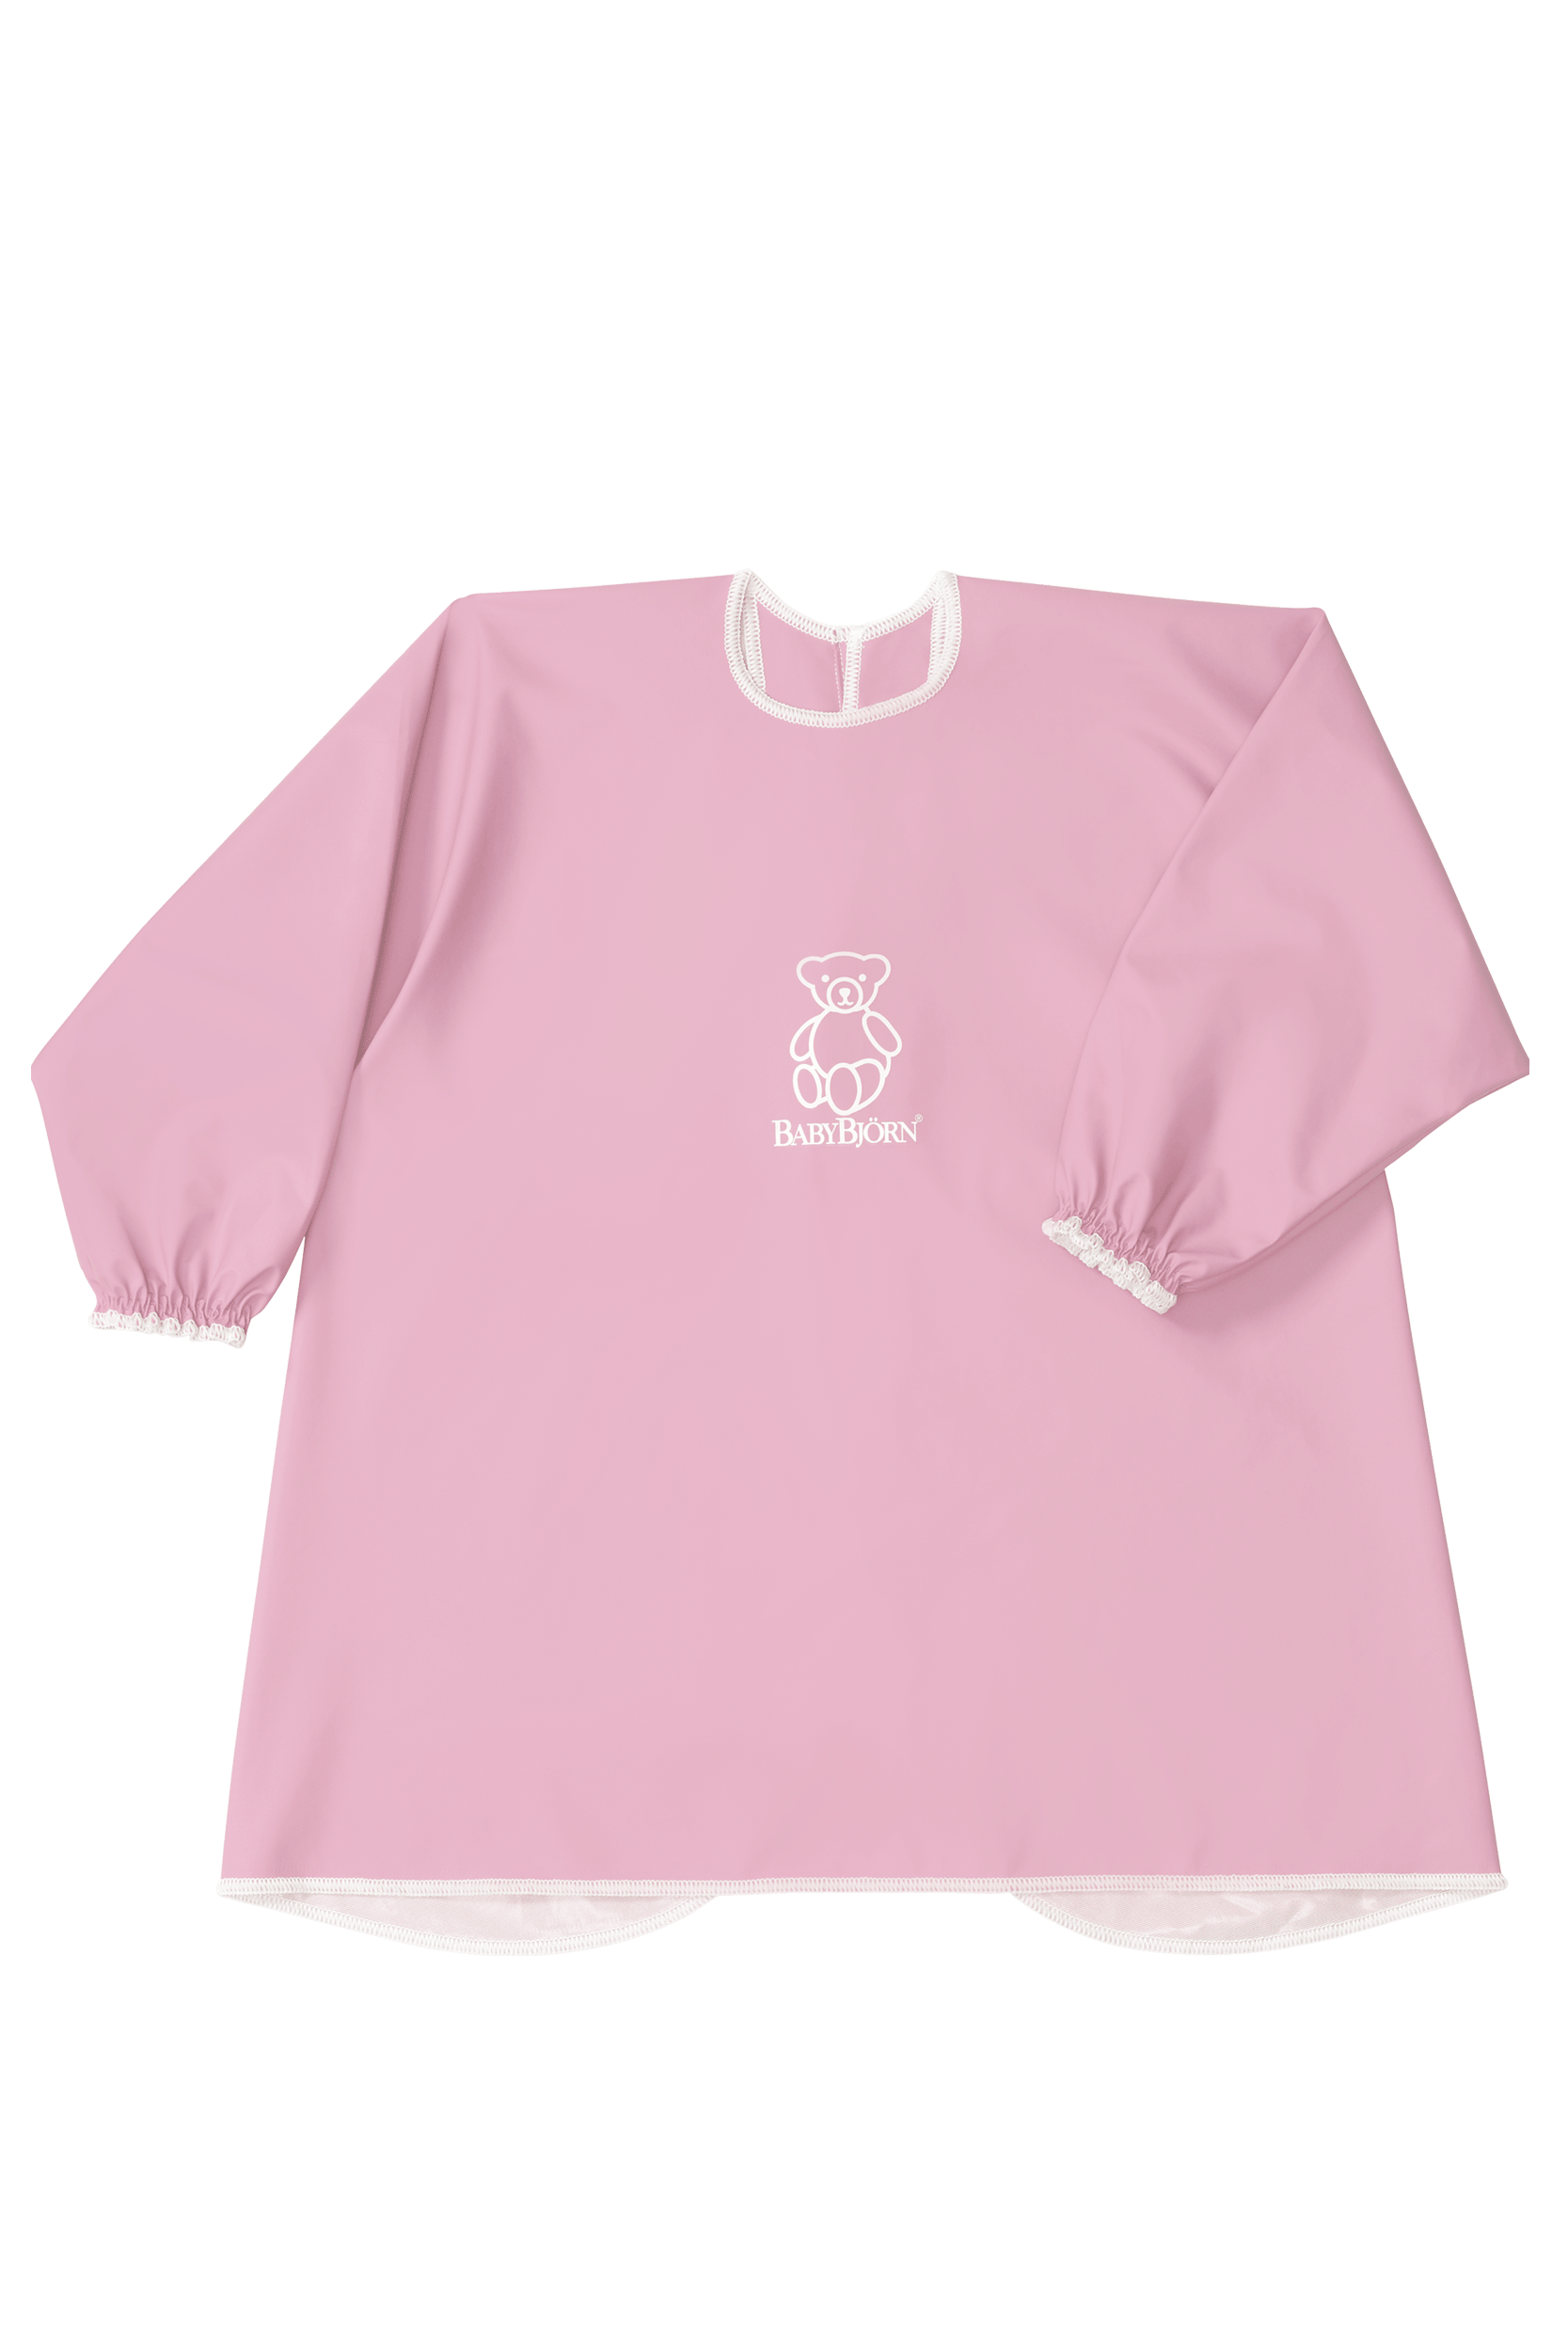 Mud Kingdom Little Boys Bow Long Sleeve Shirts